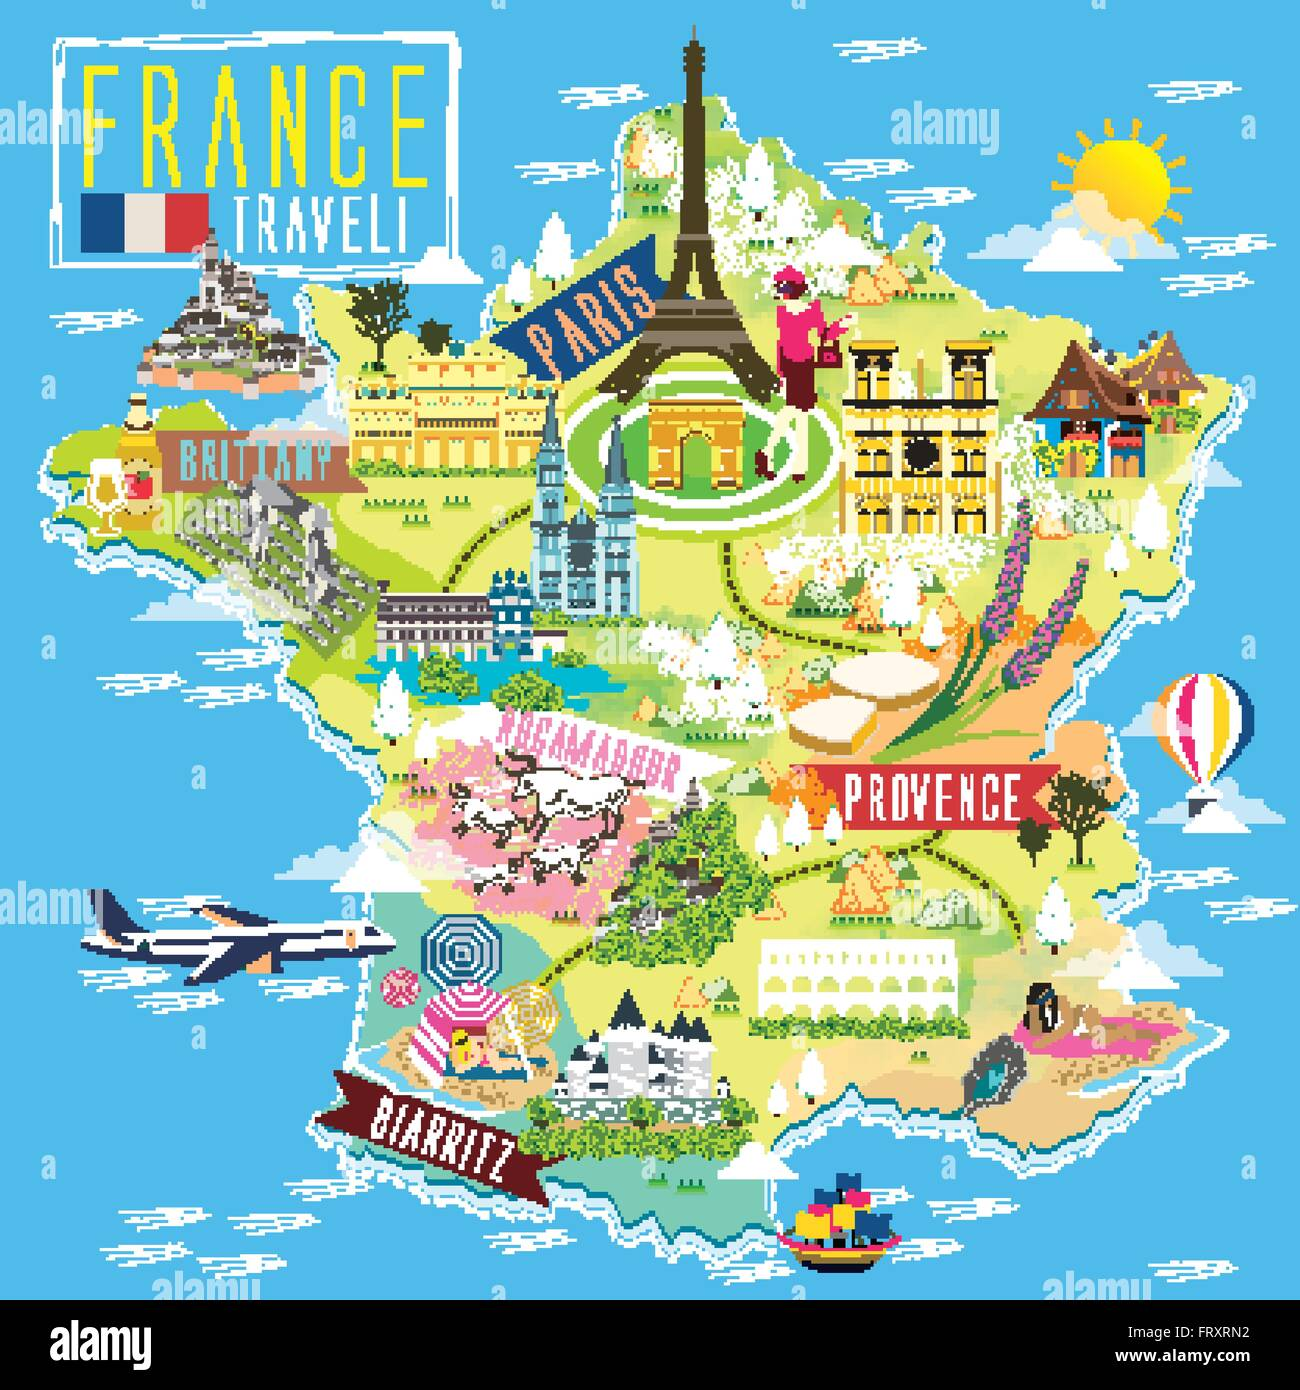 Map Of France Tourist Attractions.Lovely France Travel Map With Attraction Symbols Stock Vector Art